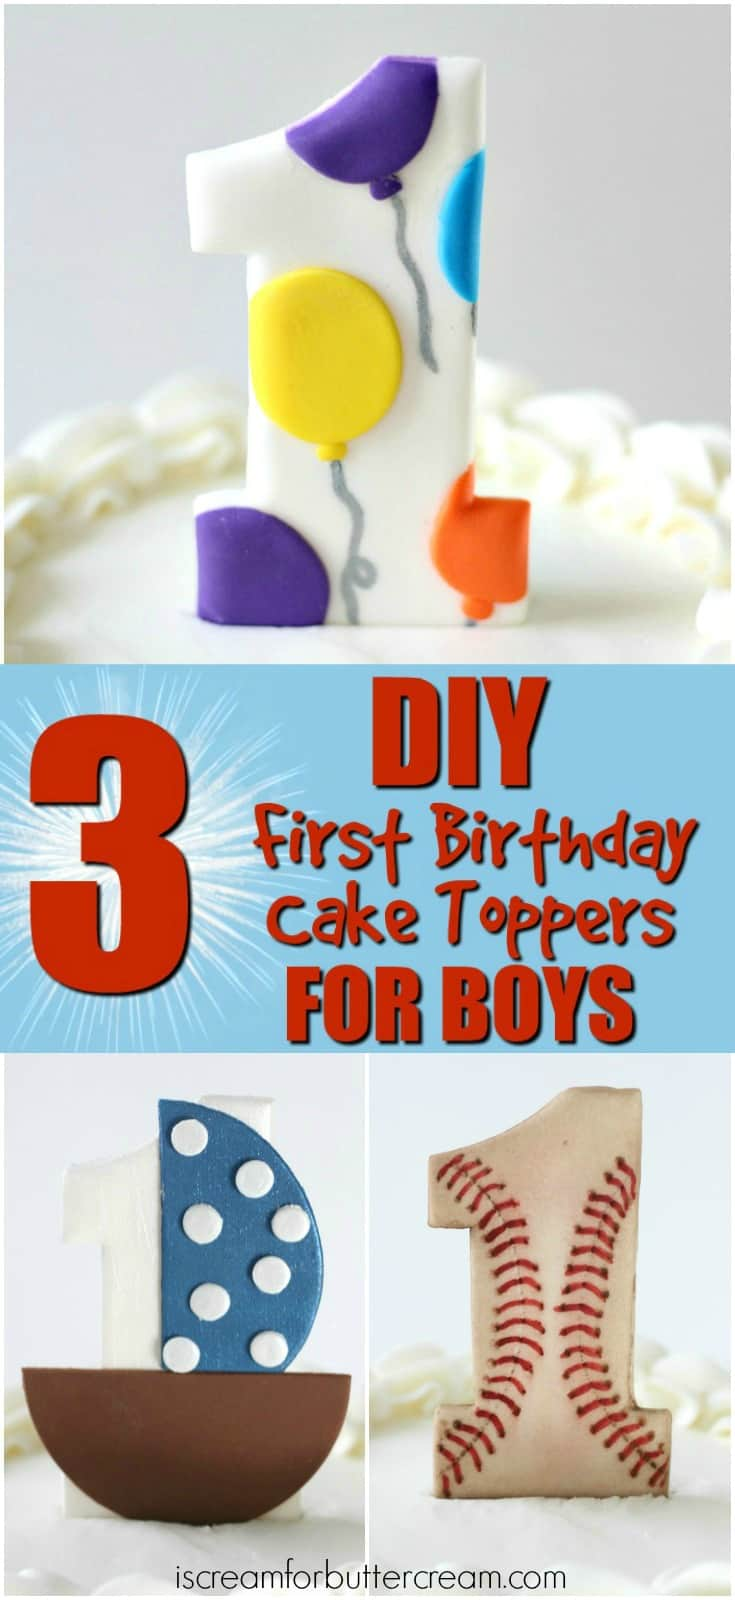 3 DIY Cake Toppers for Boys Pinterest Graphic